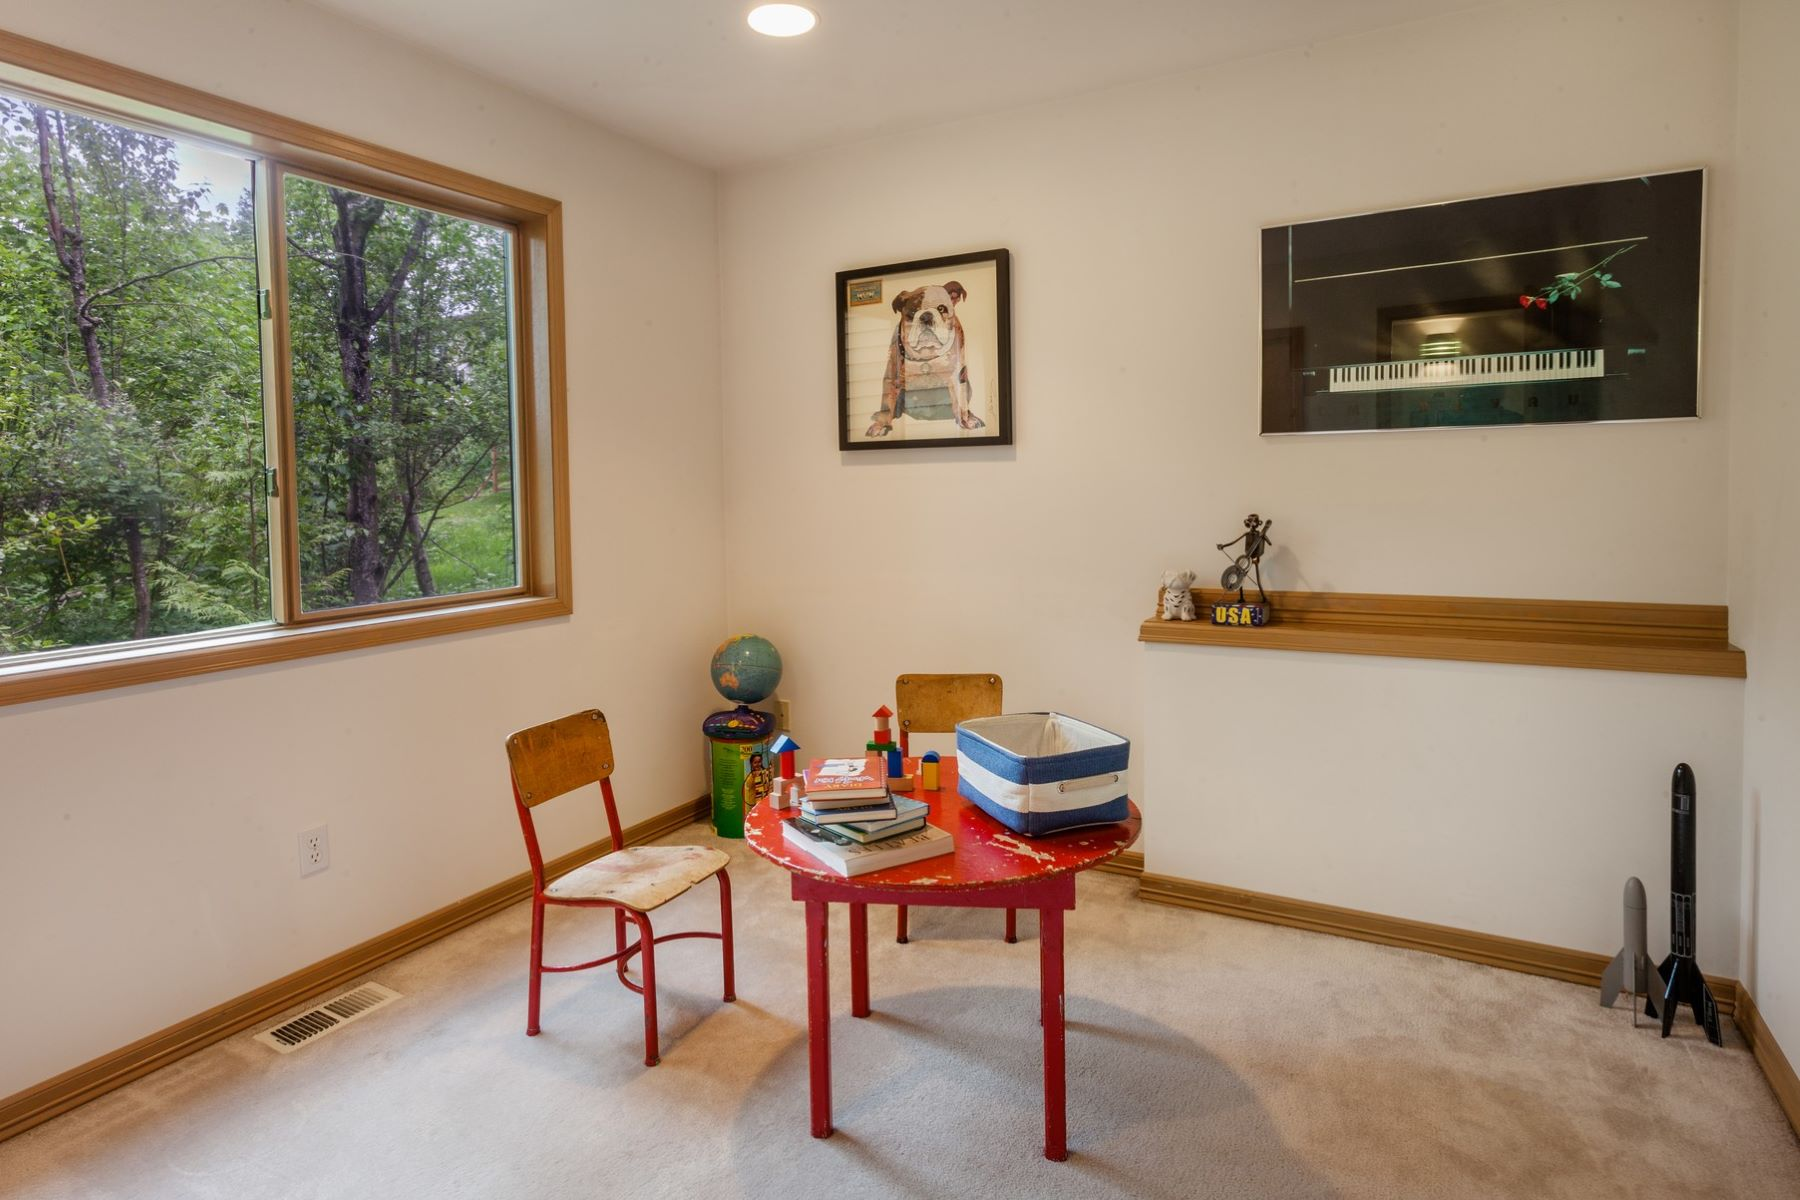 Additional photo for property listing at Clyde Hill Contemporary 9836 NE 34th Place Bellevue, Washington 98004 Estados Unidos